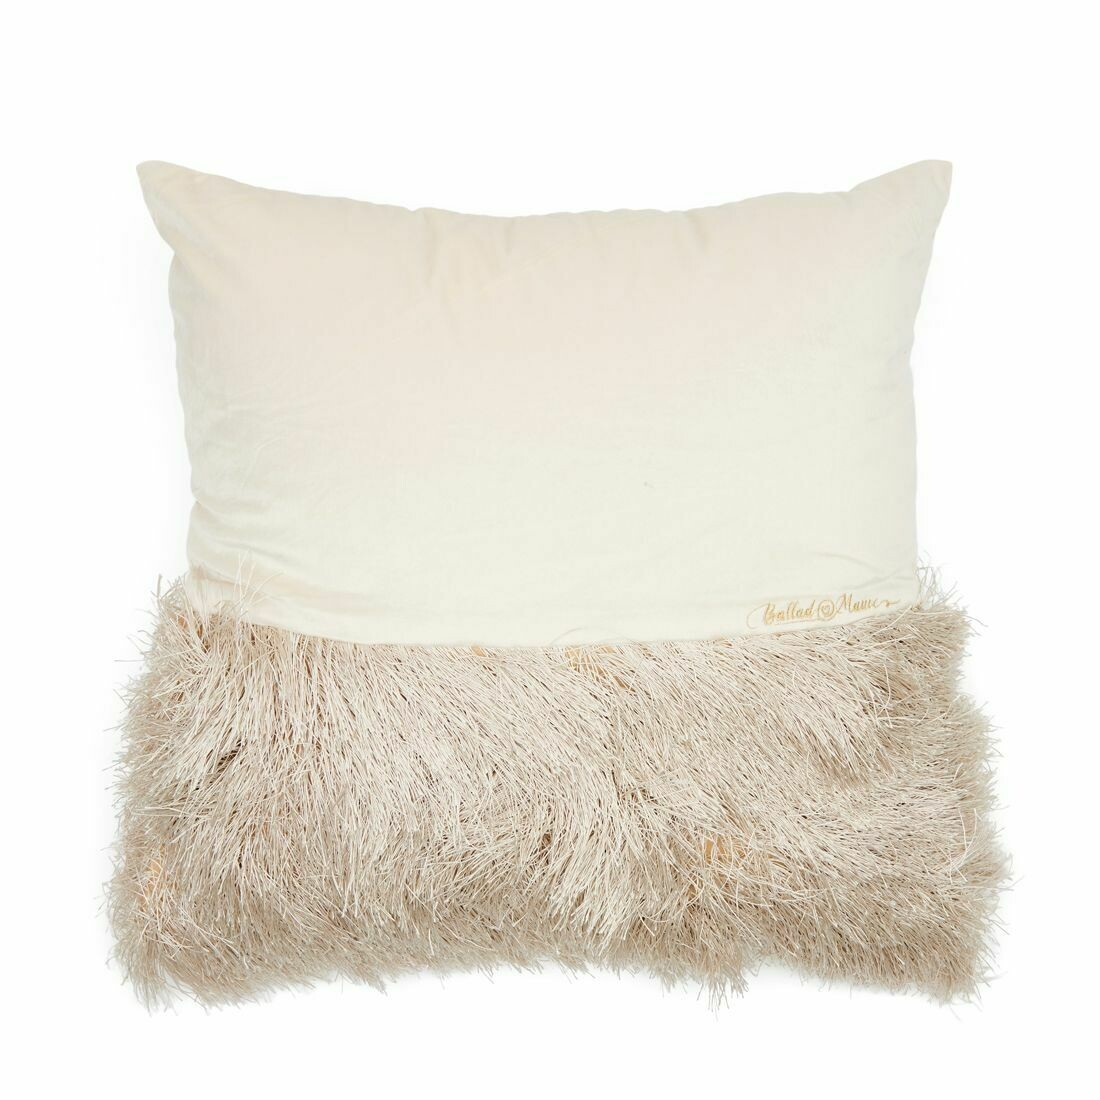 BALLAD FRINGE PILLOW COVER 50x50 cm